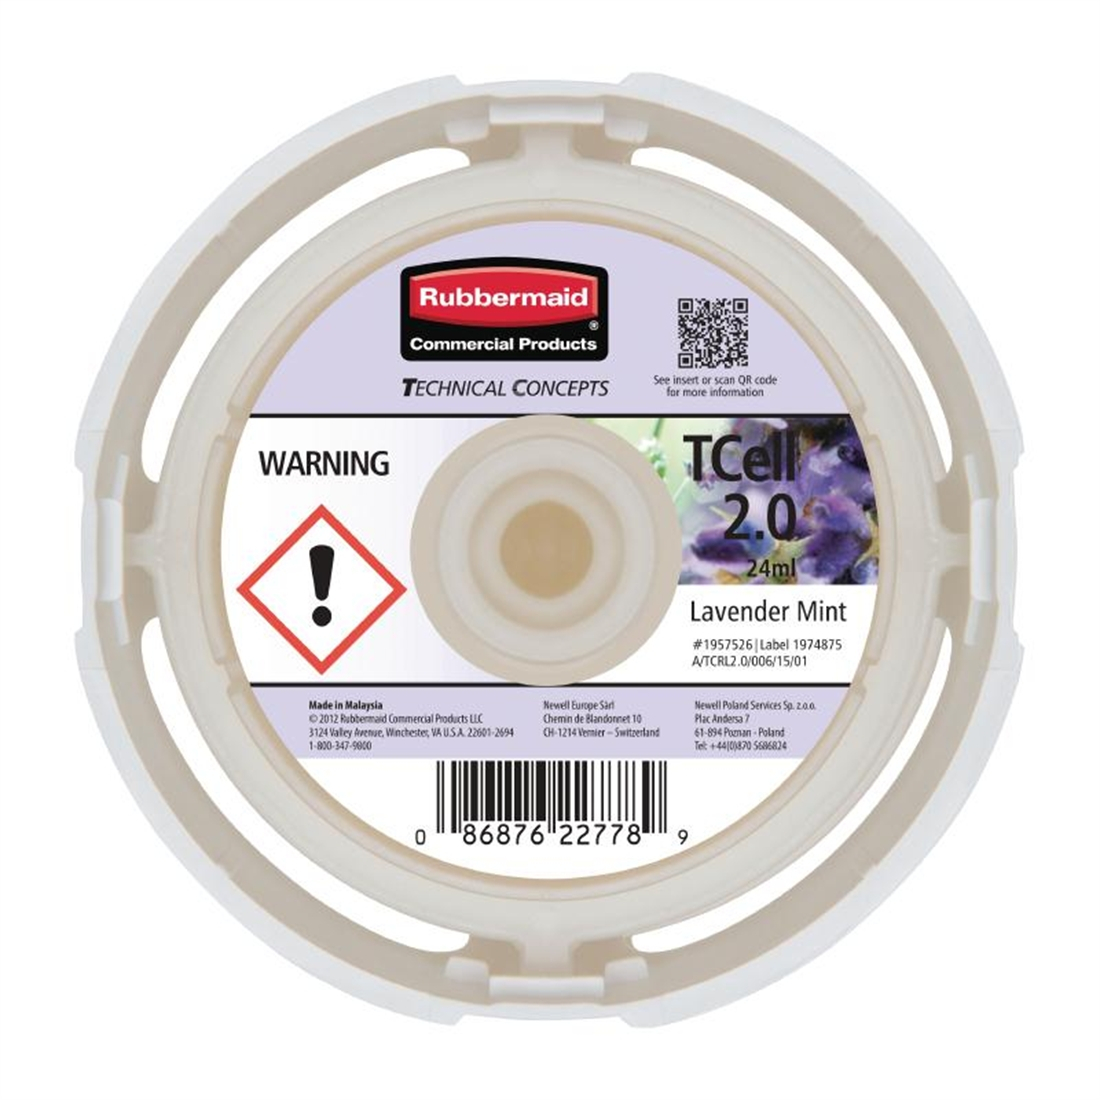 Rubbermaid TCell 2.0 Refill Lavender Mint